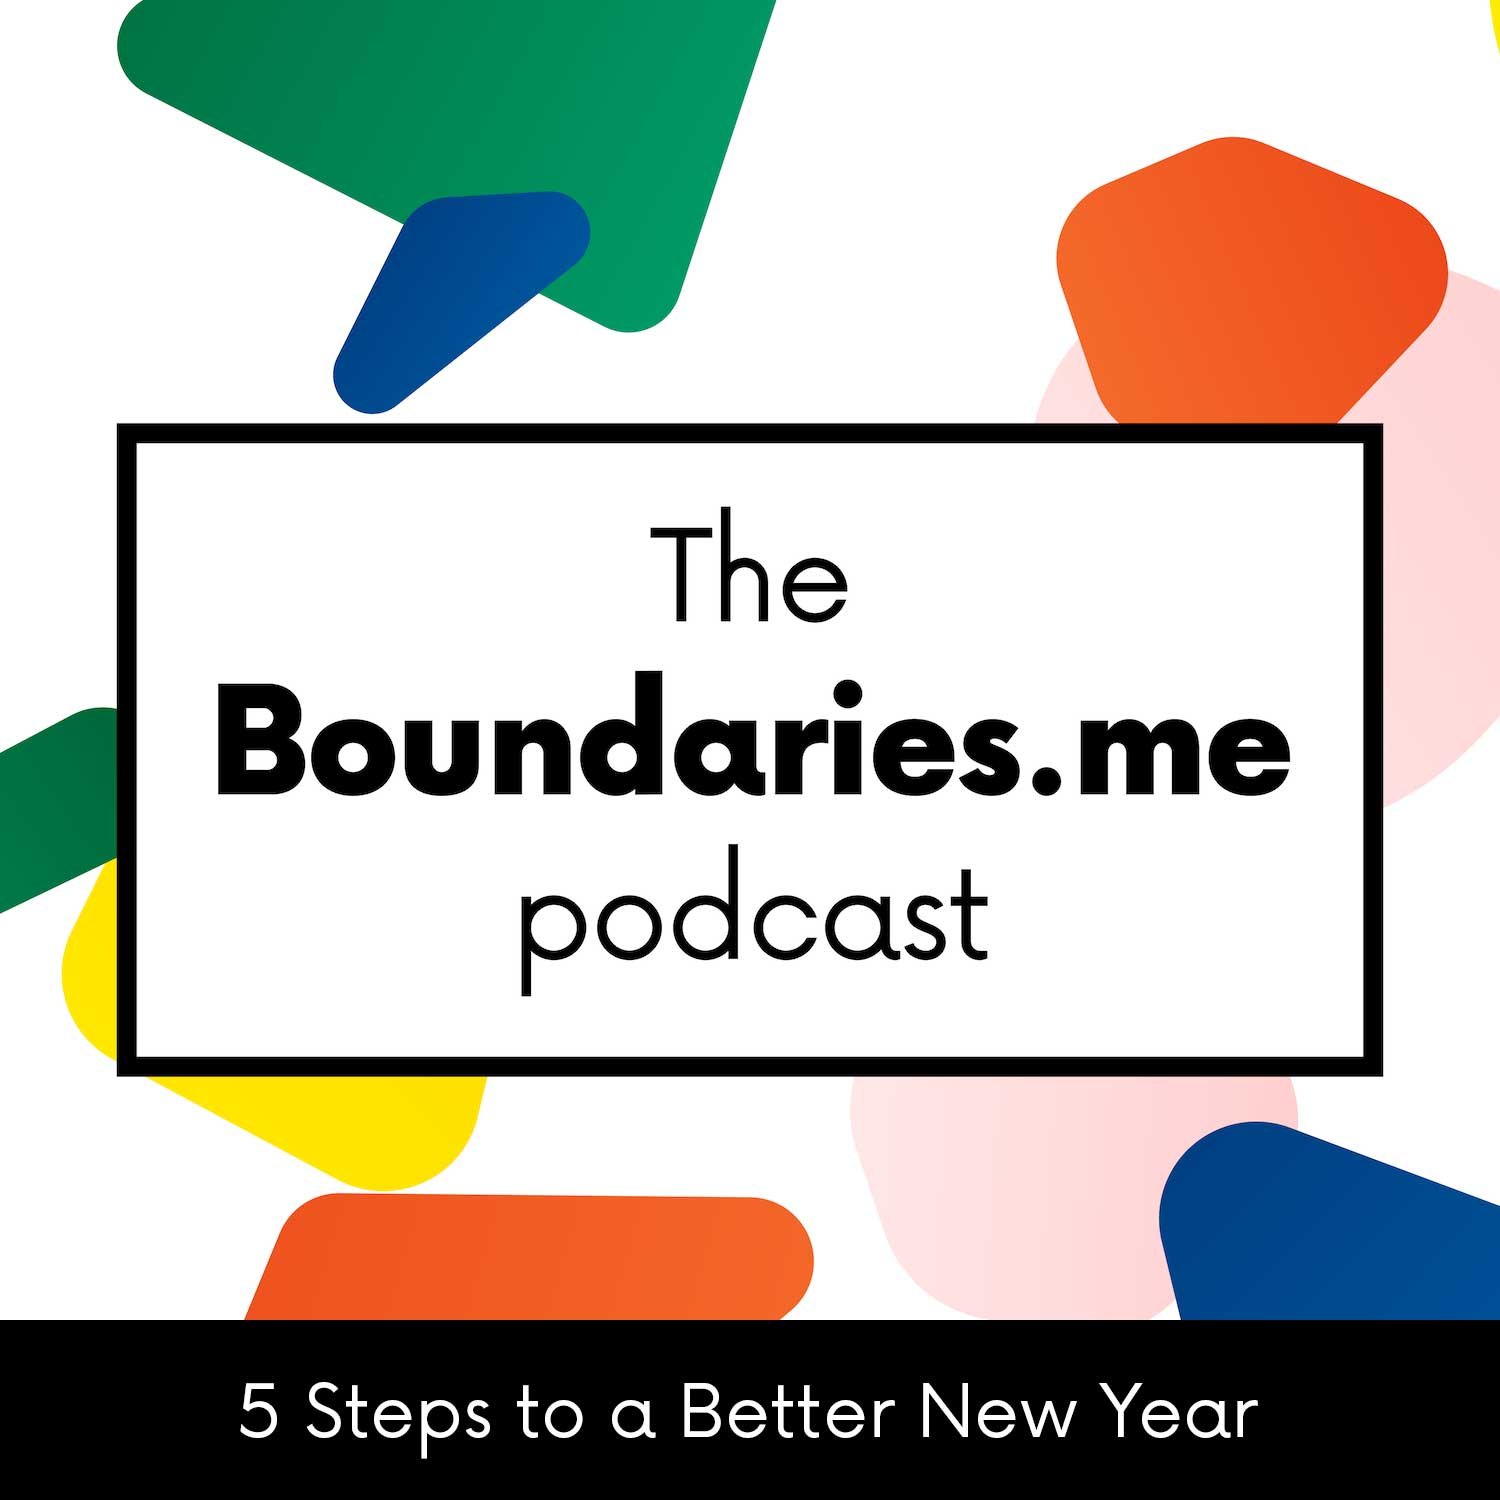 Episode 4 - Five Steps to a Better New Year